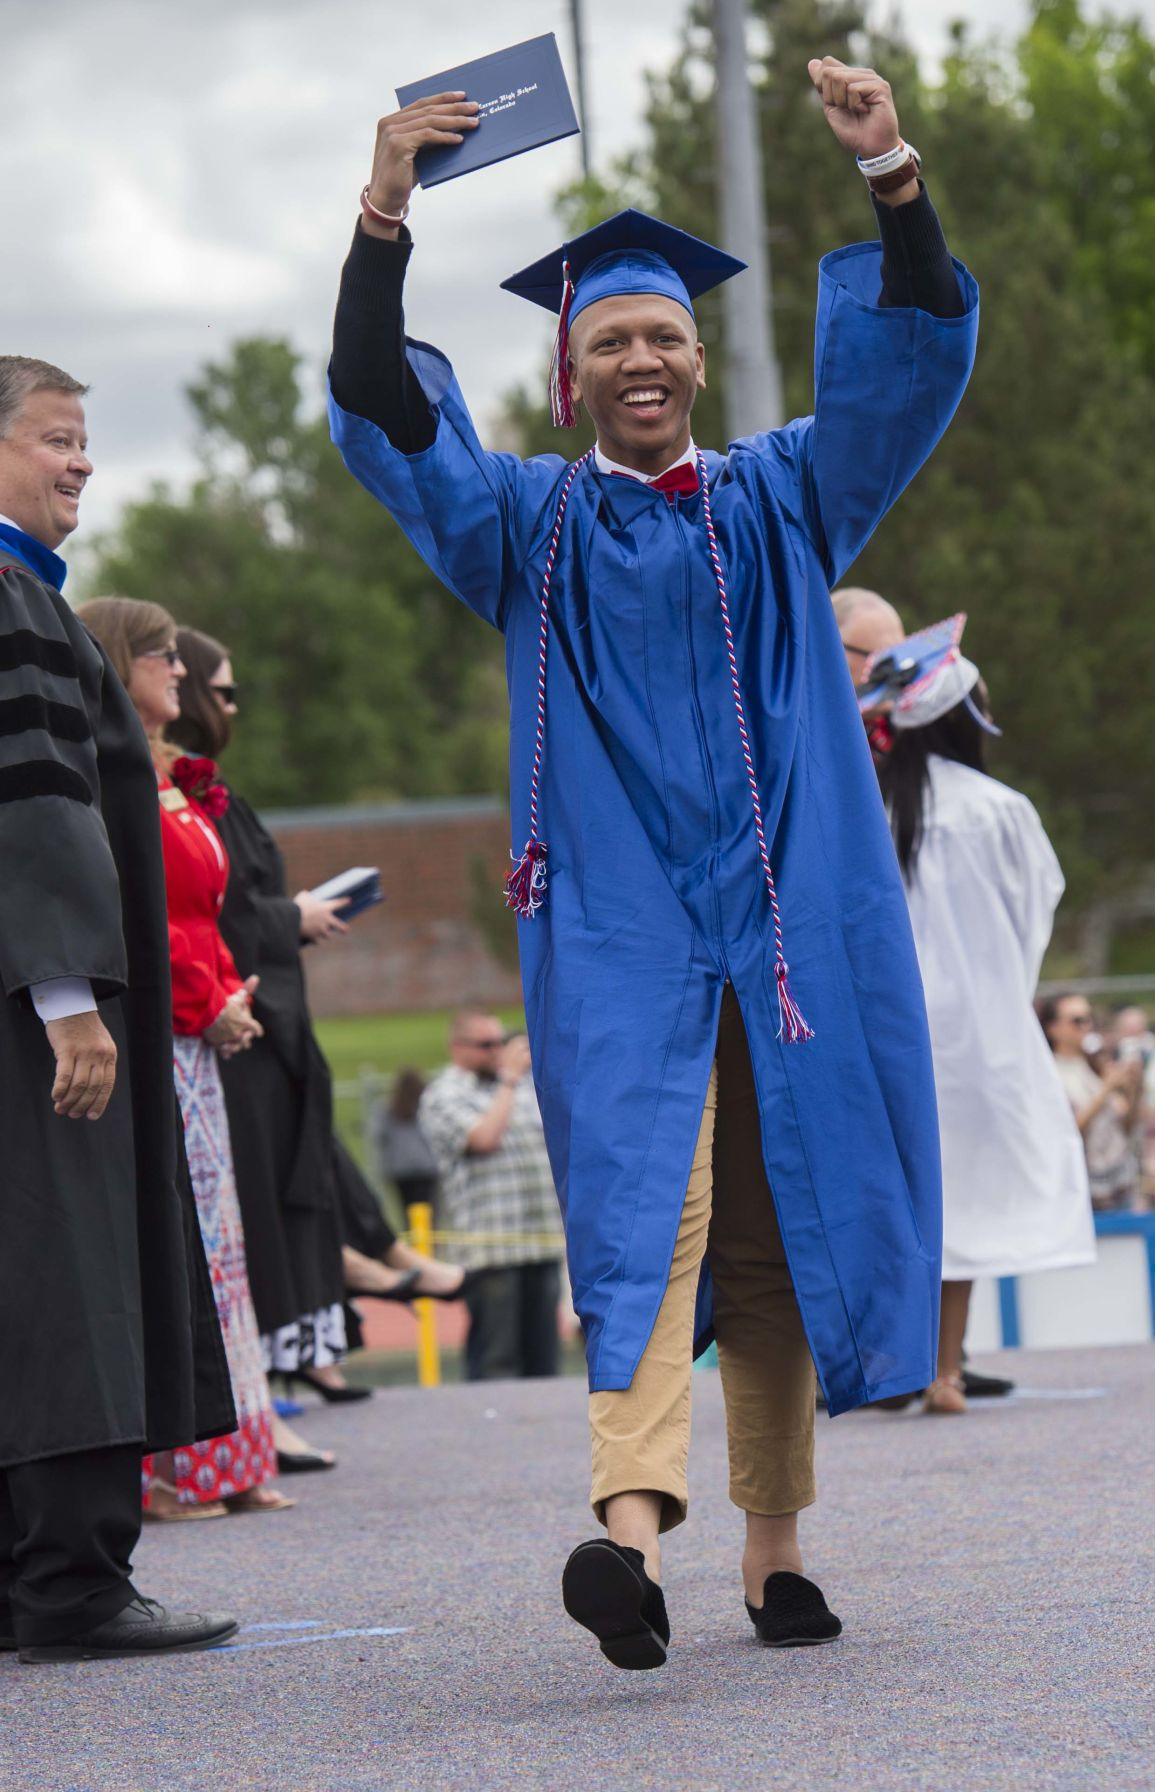 Highlights of the Fountain-Fort Carson High School commencement for the Class of 2017 Saturday, May 27, 2017, at Fountain-Fort Carson High School. (The Gazette, Christian Murdock)